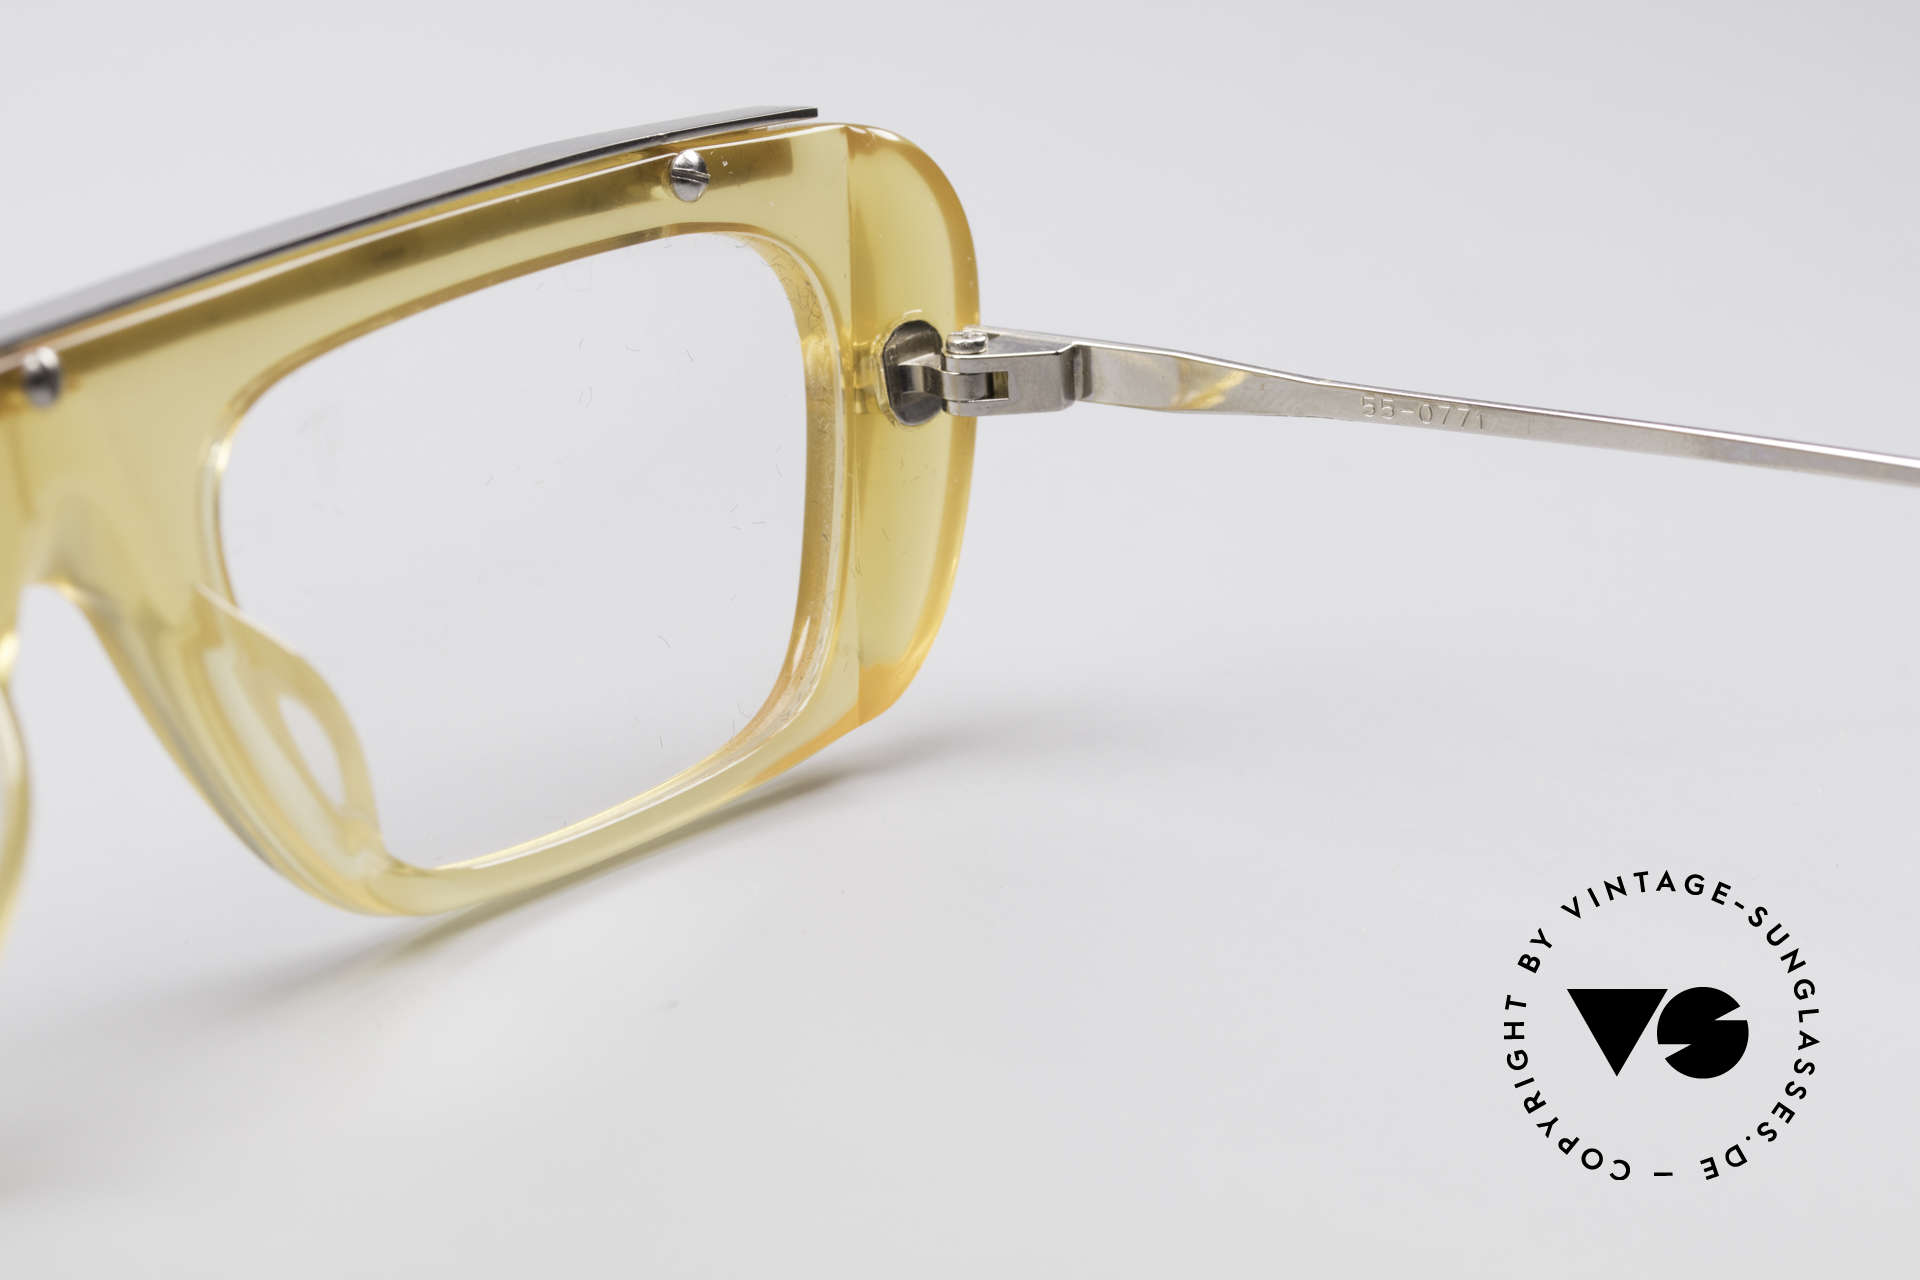 Jean Paul Gaultier 55-0771 Striking Vintage JPG Frame, the frame can be glazed with lenses of any kind, Made for Men and Women